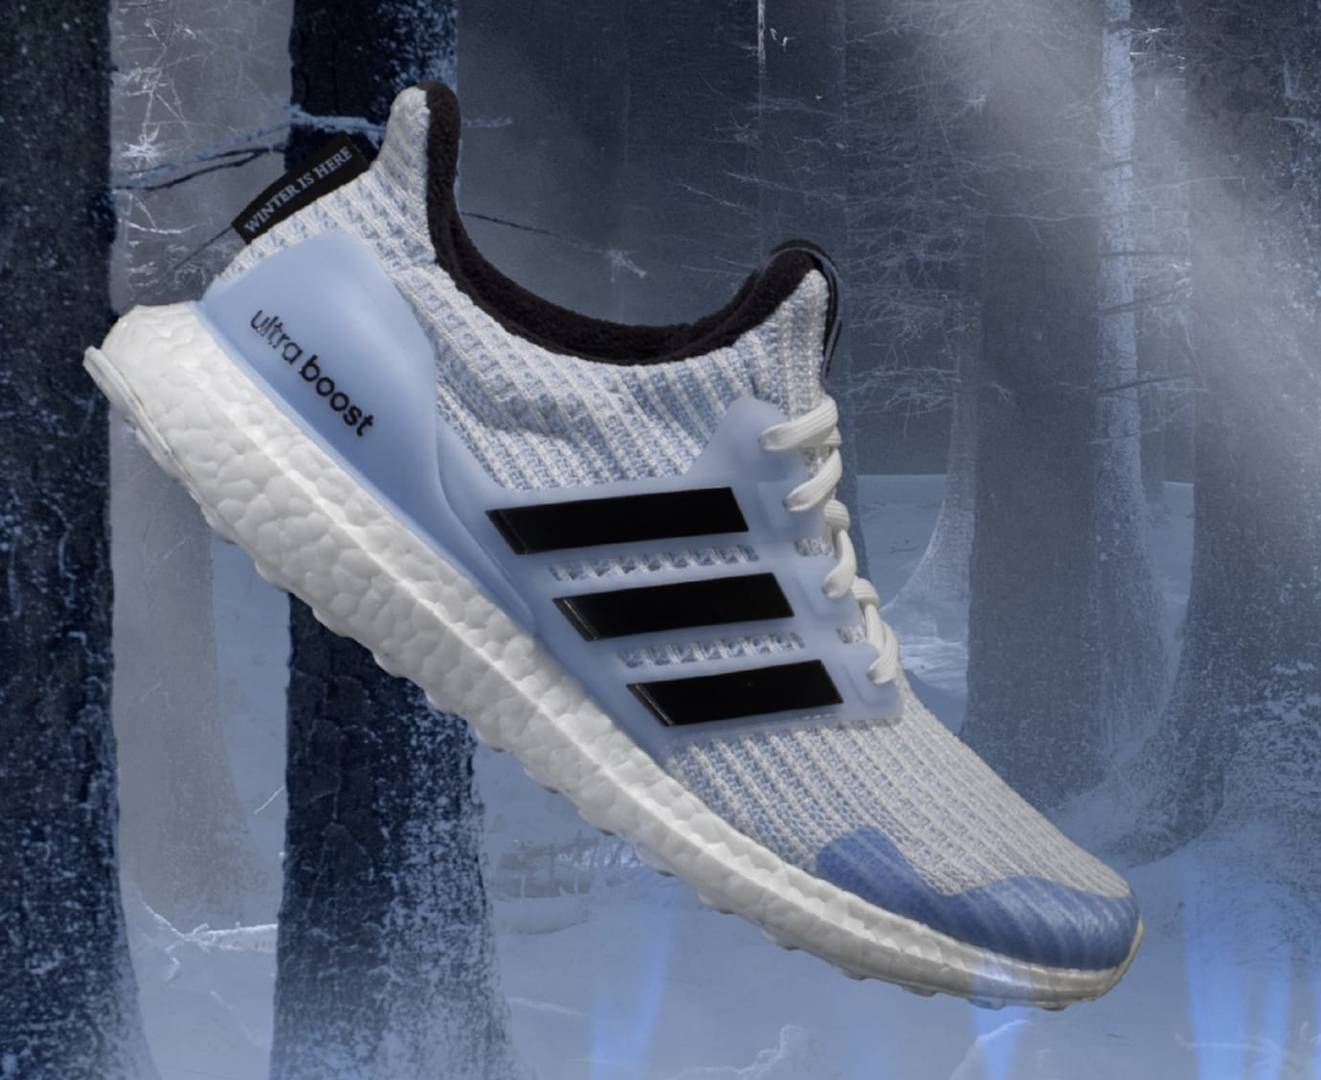 Adidas UltraBoost x Game Of Thrones Collection: Official Images, Release Info